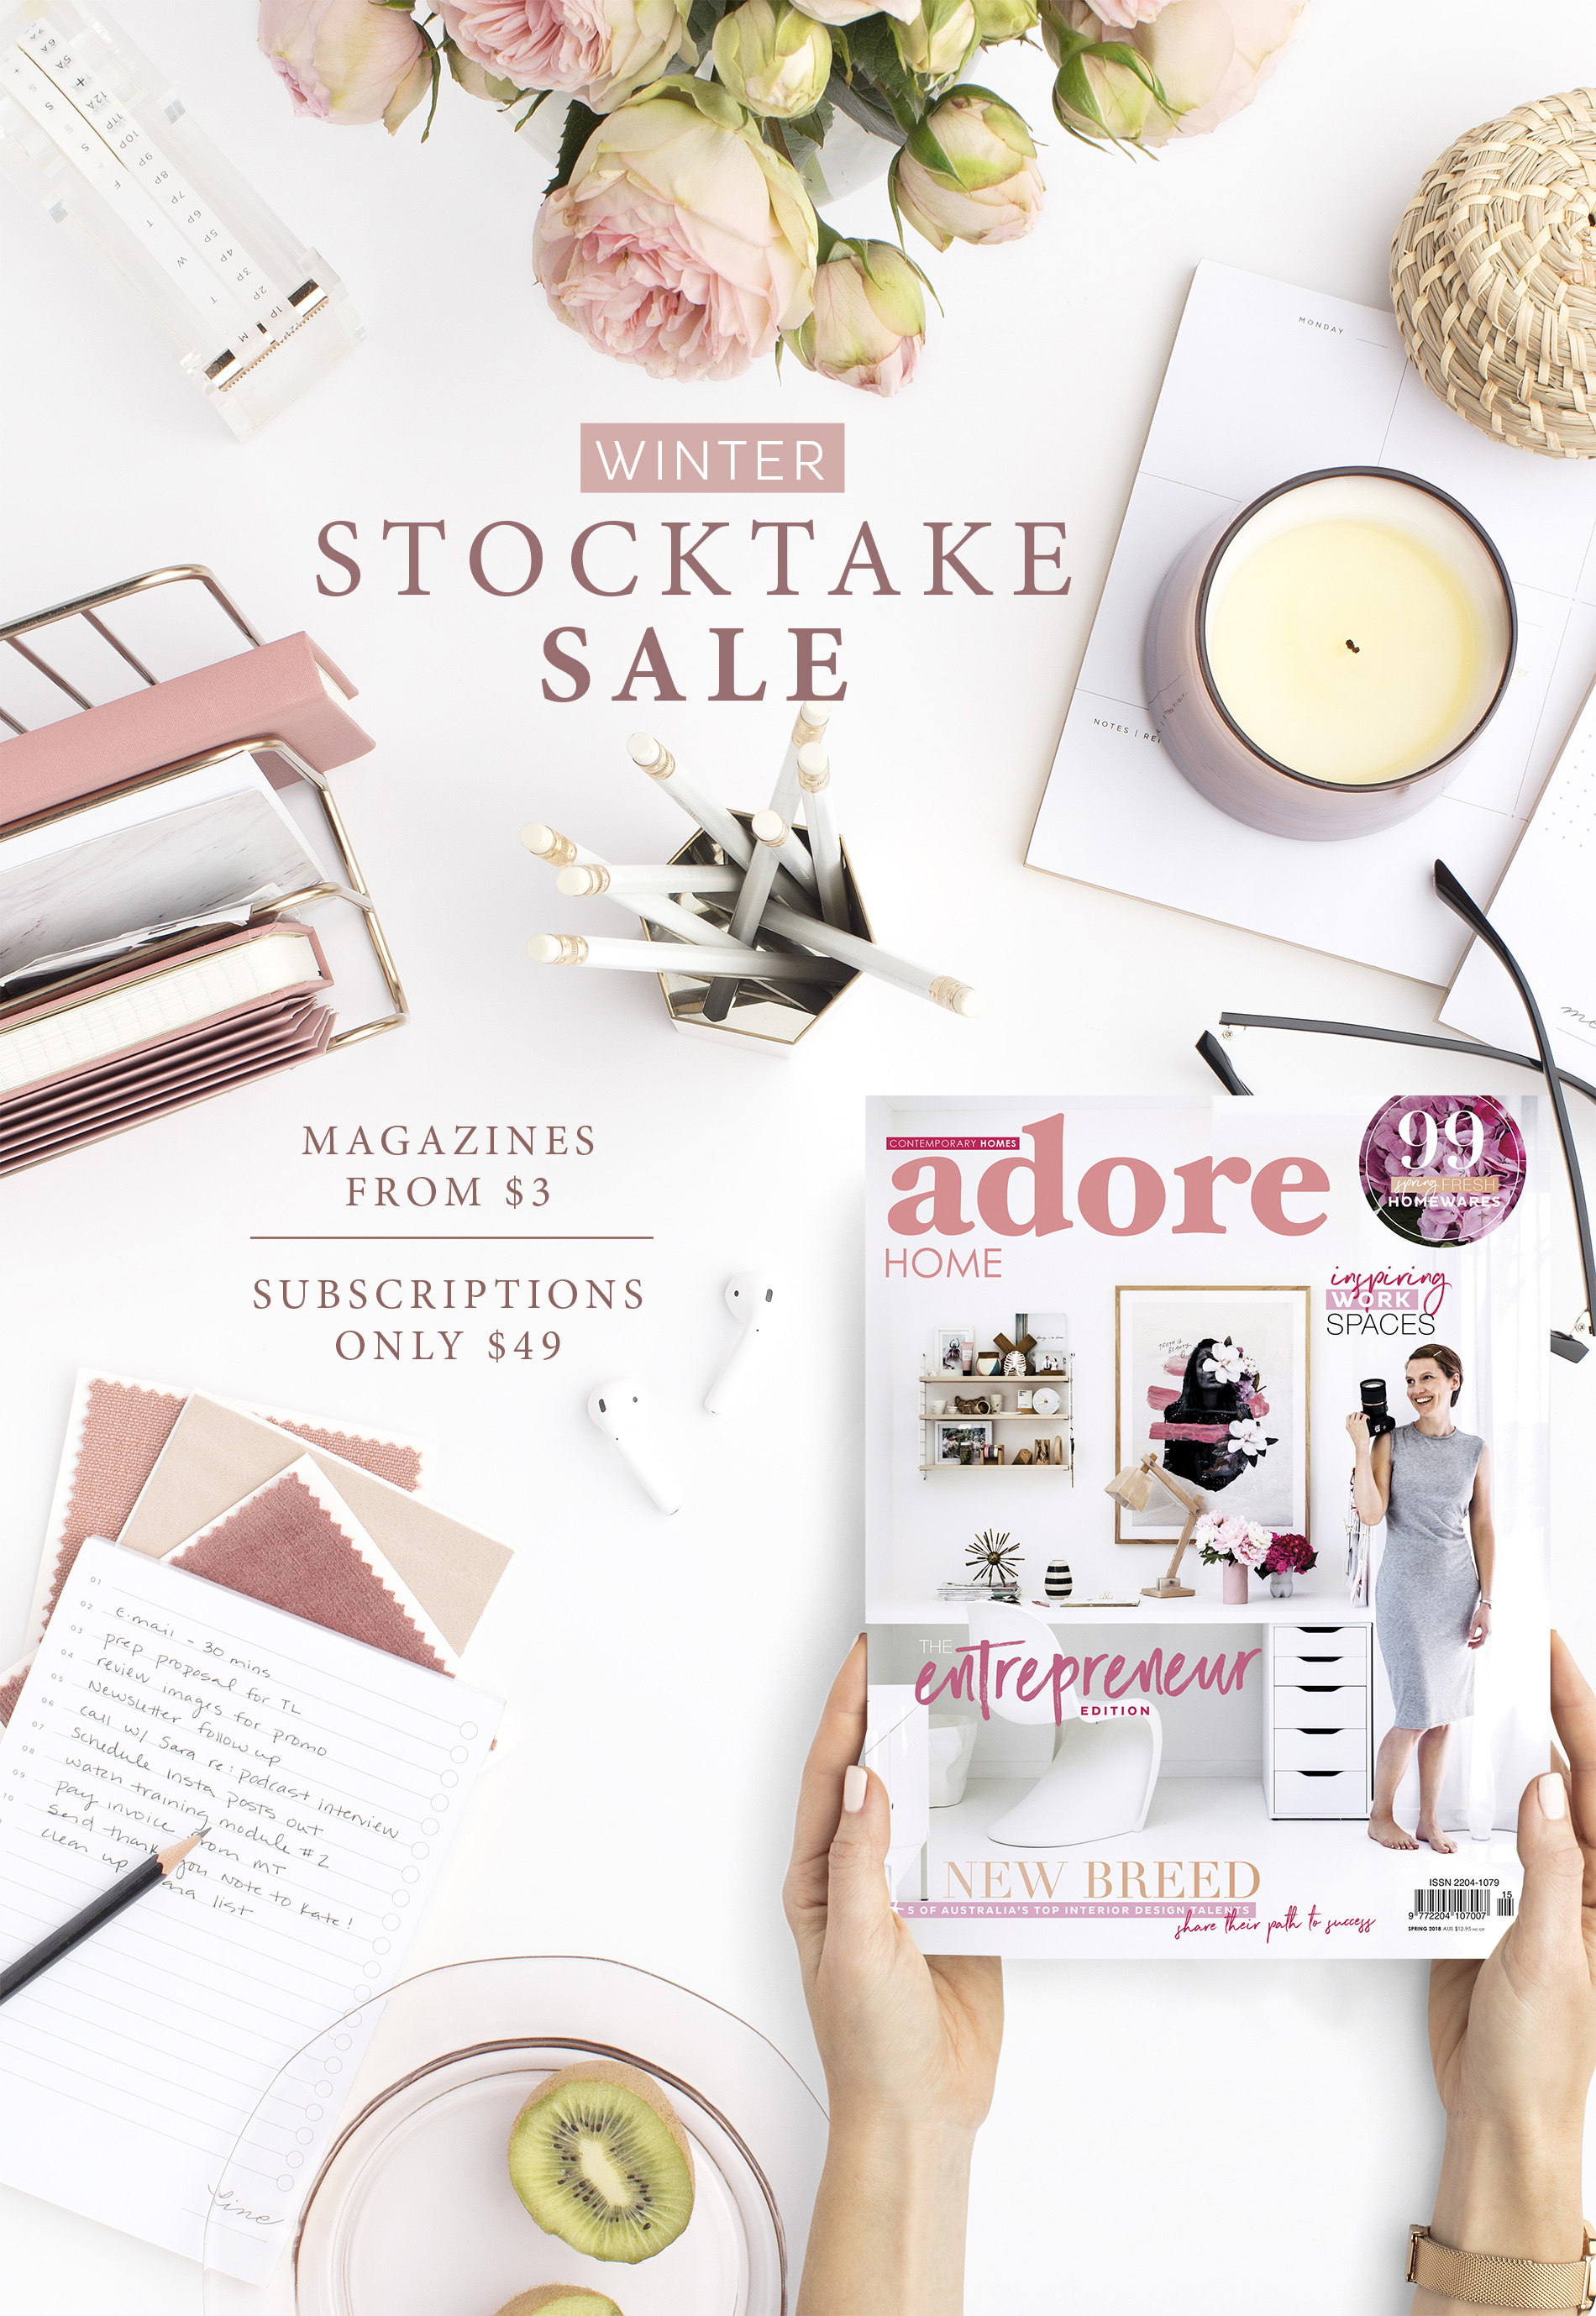 STOCKTAKE_SALE_ADORE_MAGAZINE.jpg